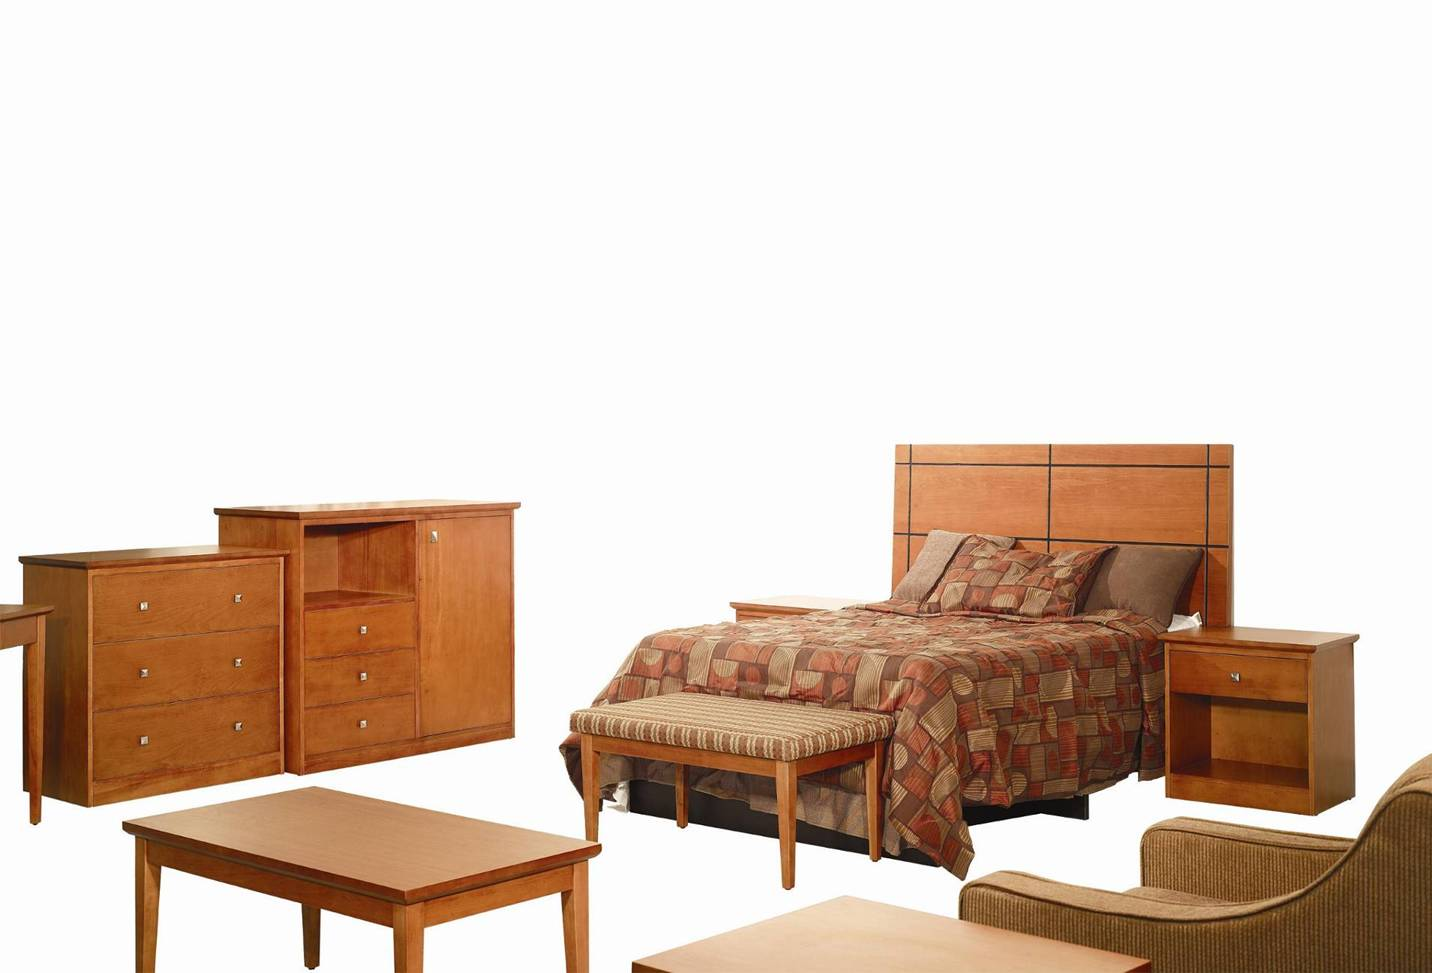 Hotel furniture hospitality furniture manufacturer for Furniture manufacturers